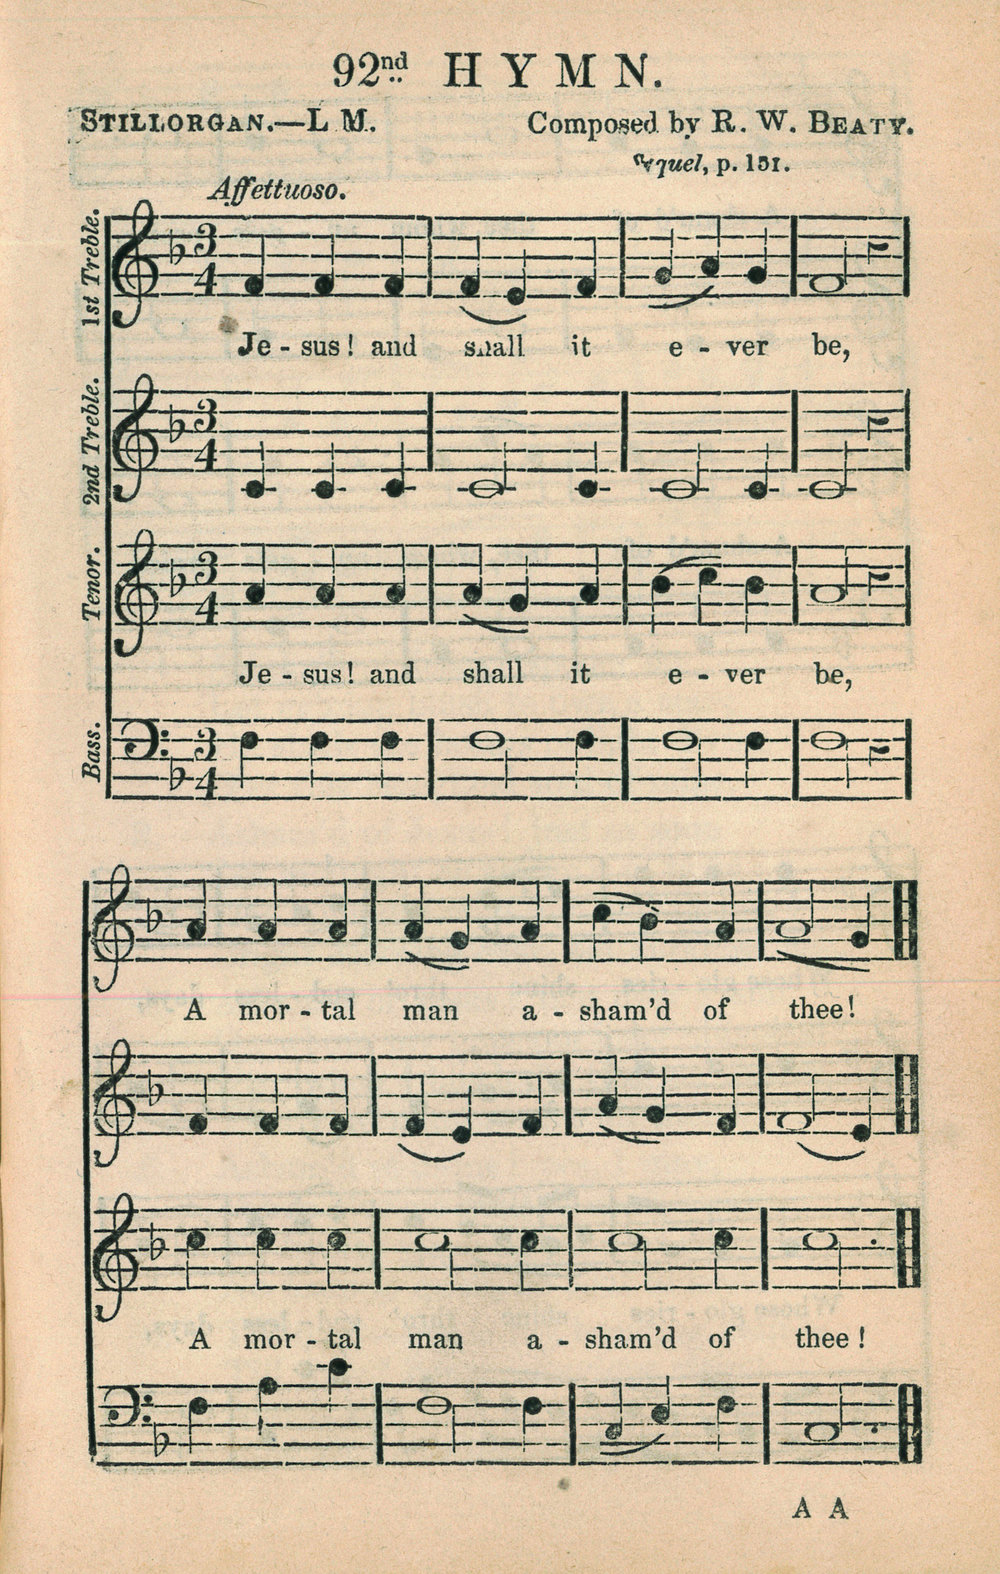 STILLORGAN-Weyman-150Hymns-Sequel_001a.jpg